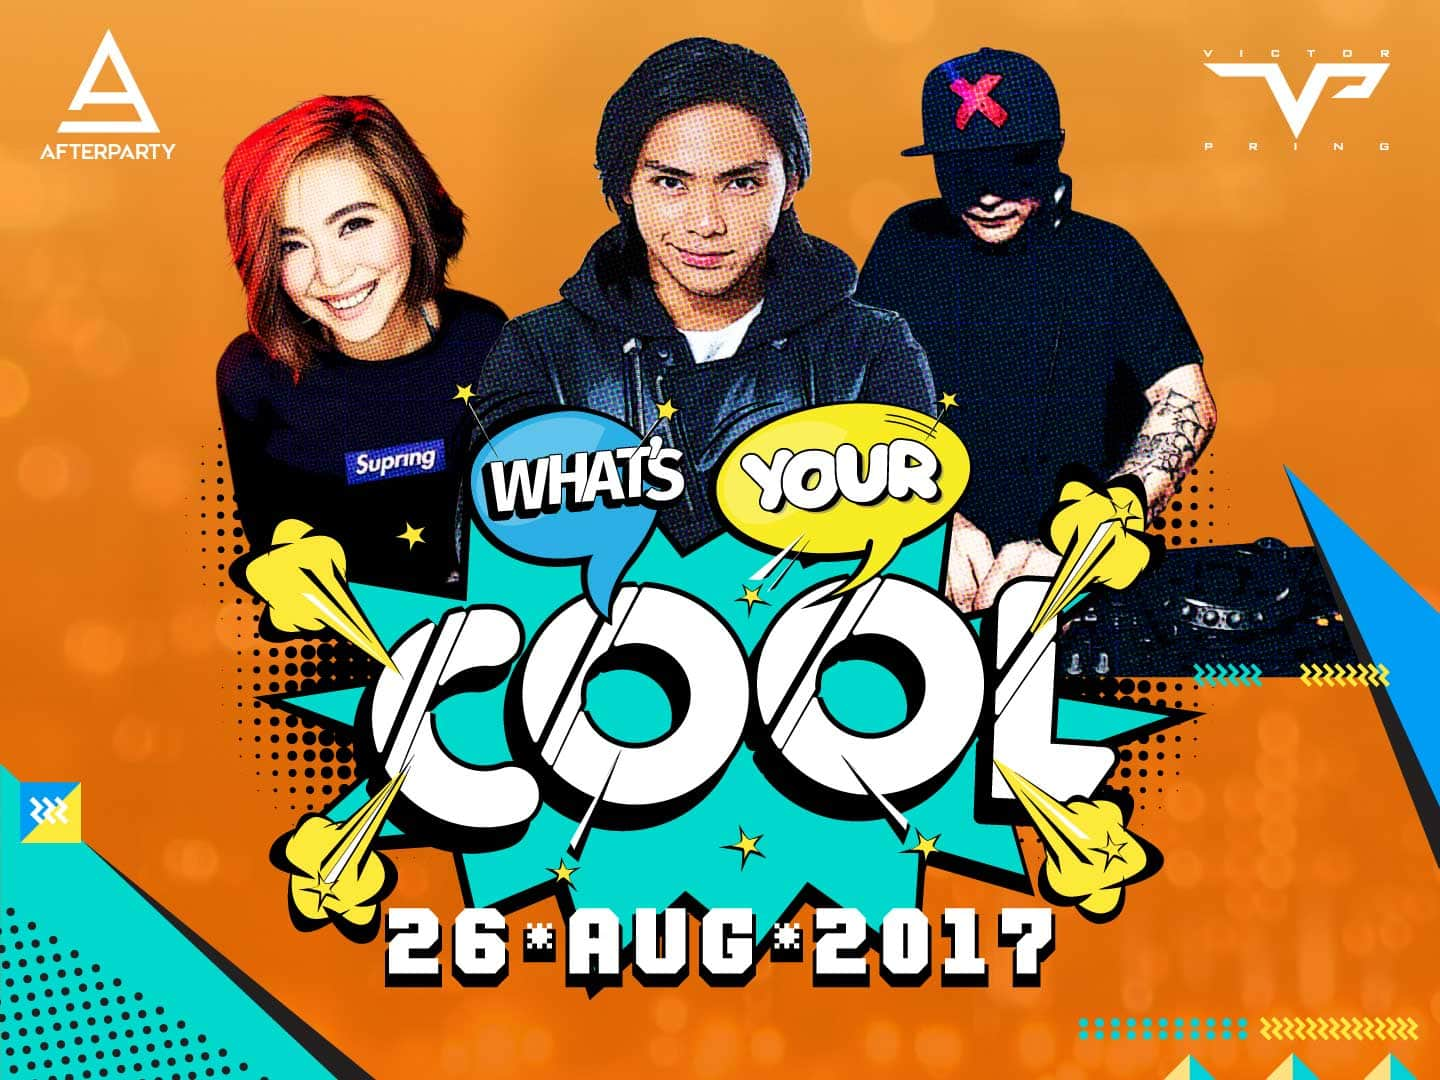 Victor Pring, Joyce Pring, and DJ X-Factor for What's Your Cool